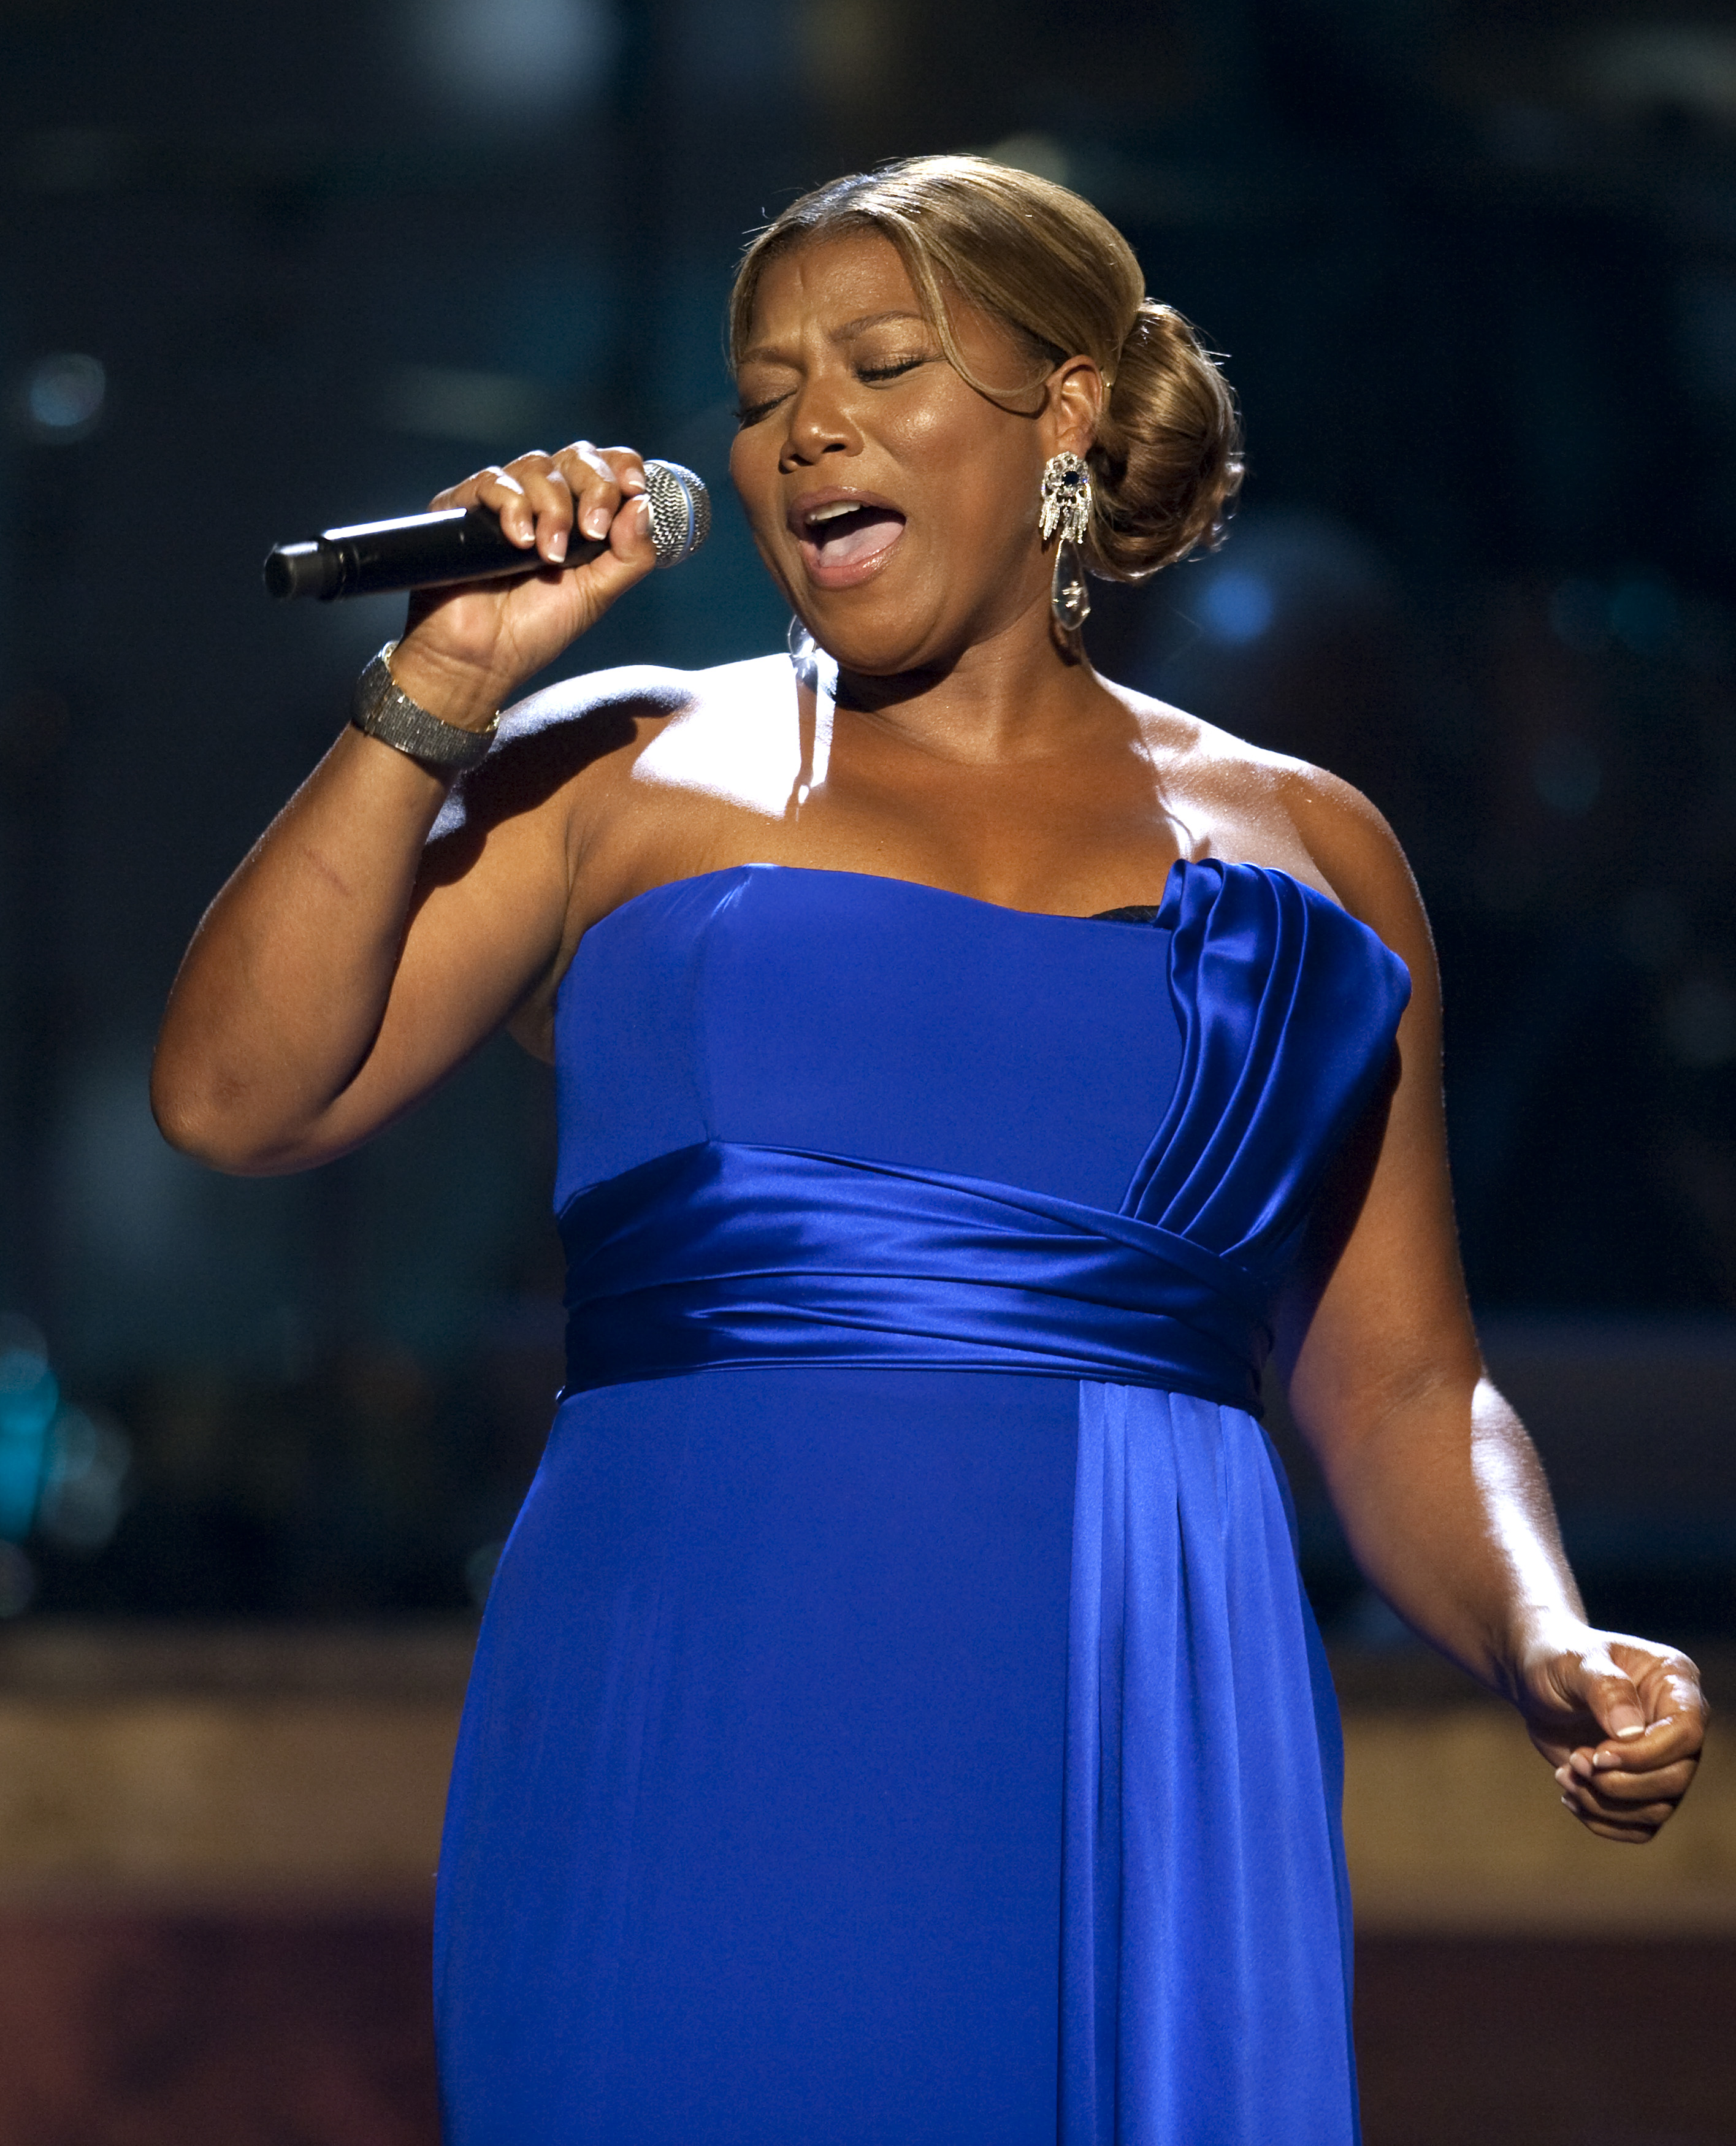 Singer And Actress Queen Latifah Performs At The Bet Honors Awards In Washington Black Women